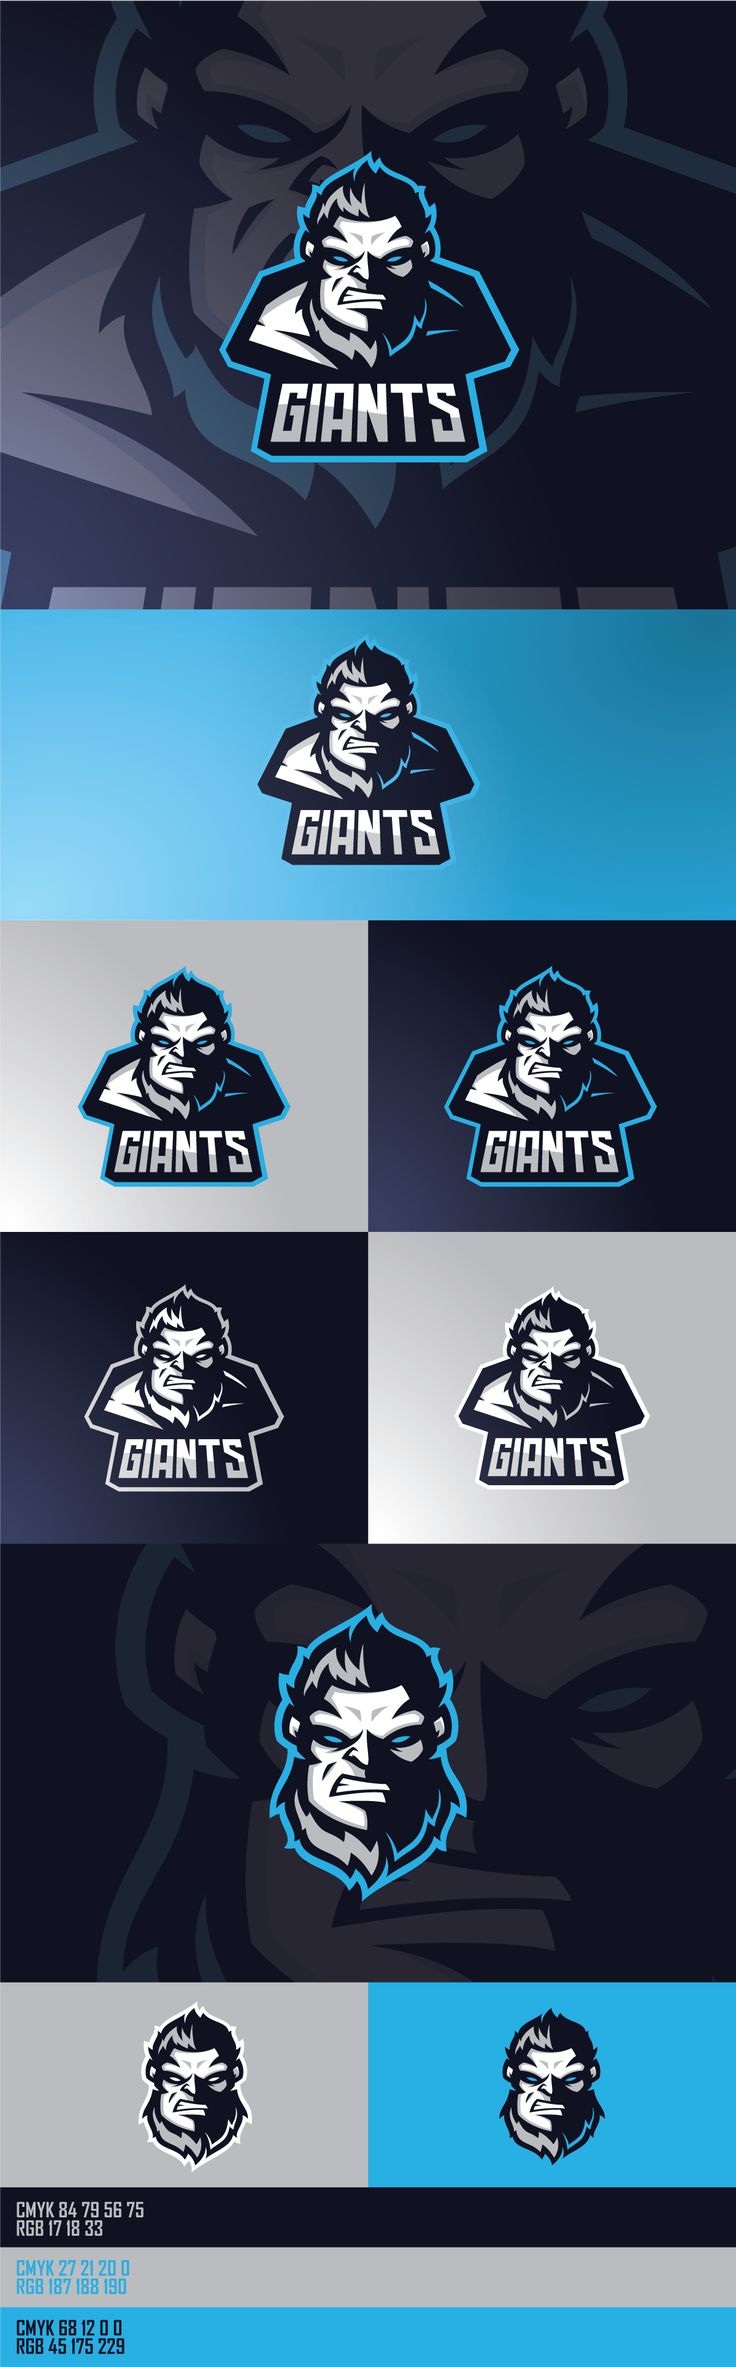 GIANTS on Behance                                                                                                                                                                                 More